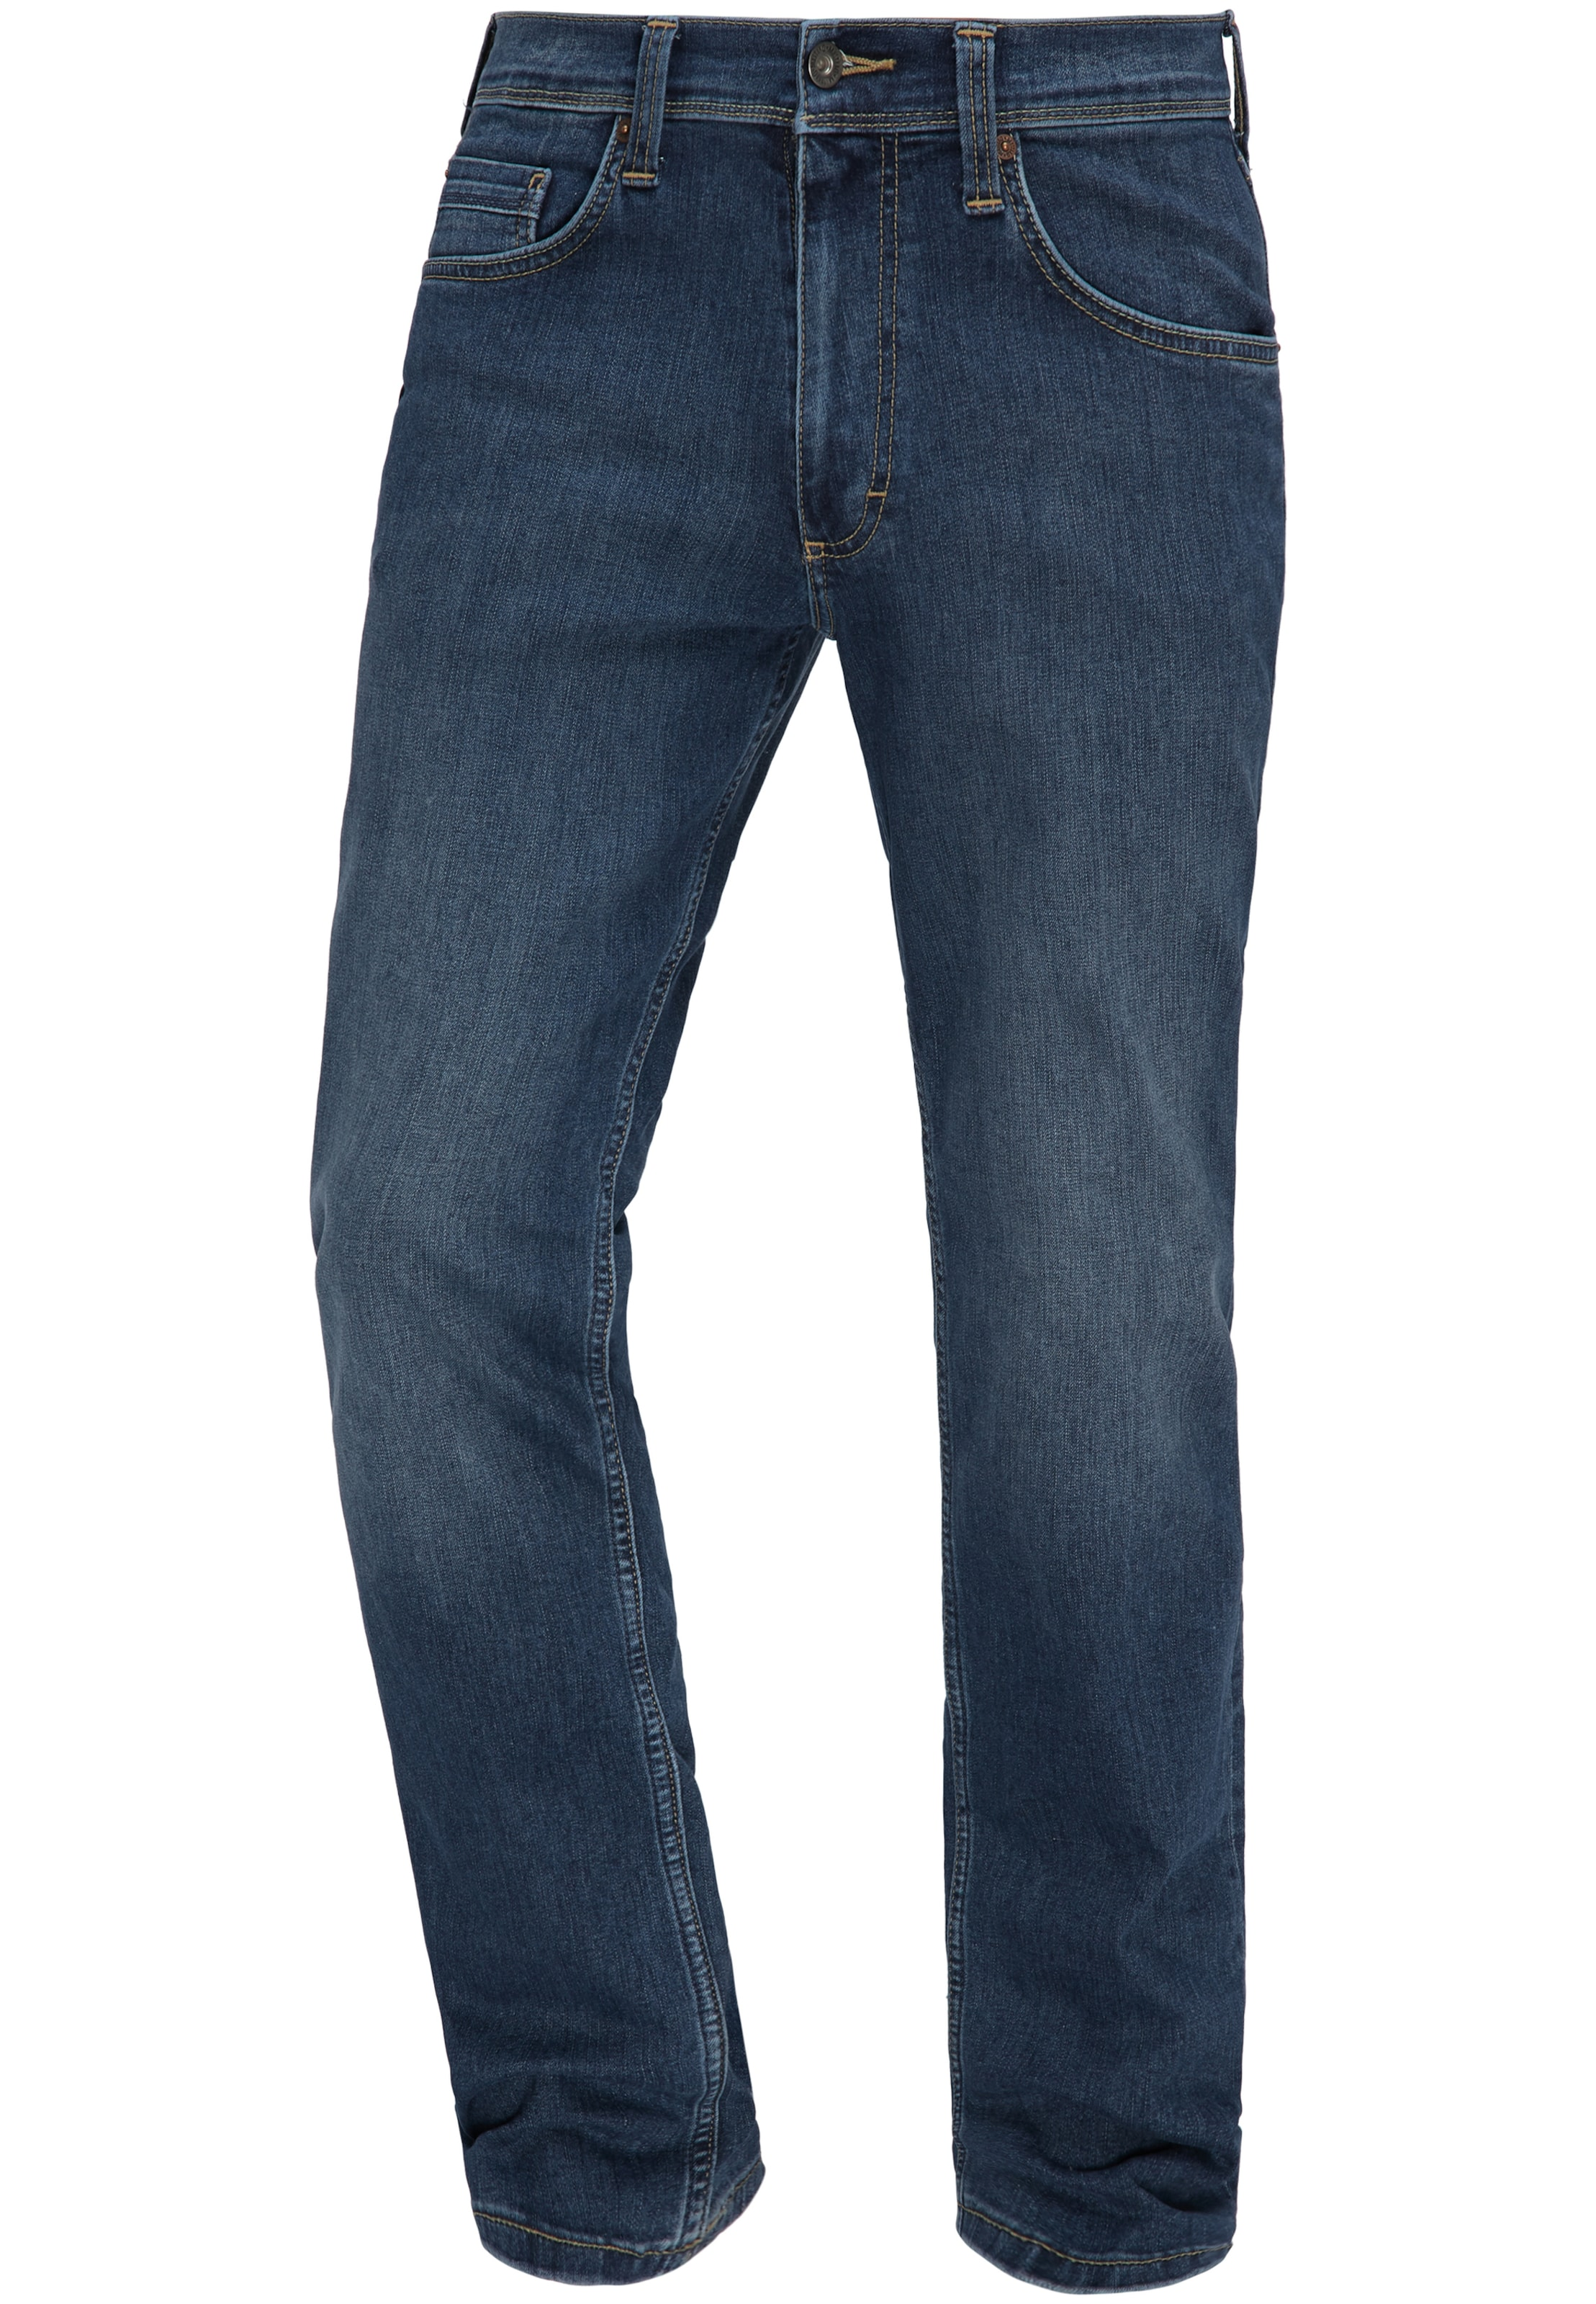 Mustang 'washington' Mustang 'washington' Jeans In Dunkelblau Jeans Dunkelblau Mustang 'washington' In Jeans Ig6bYvm7fy